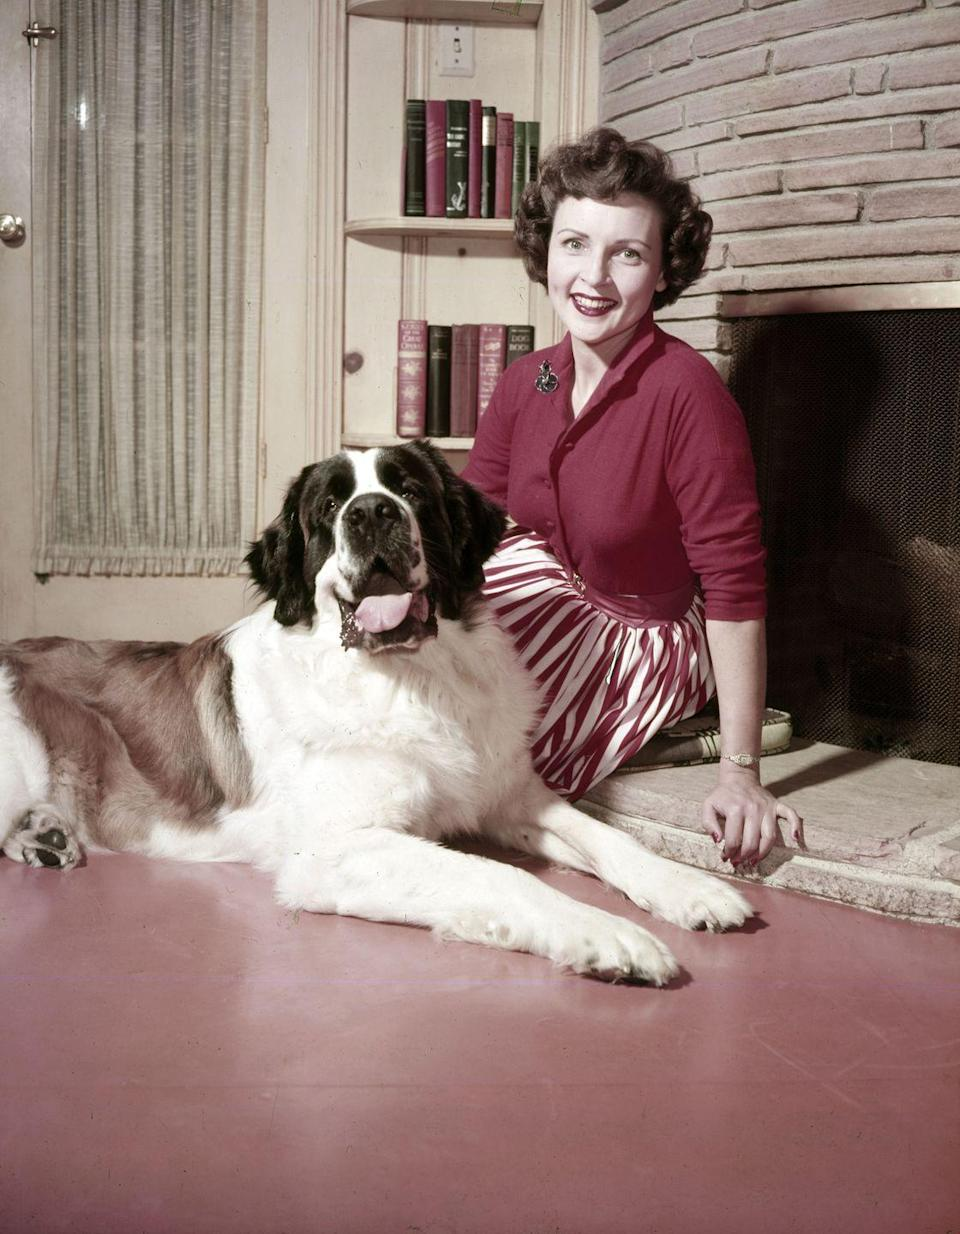 """<p><a href=""""https://www.goodhousekeeping.com/life/entertainment/g30480315/betty-white-photos/"""" rel=""""nofollow noopener"""" target=""""_blank"""" data-ylk=""""slk:Actress Betty White"""" class=""""link rapid-noclick-resp"""">Actress Betty White</a> gives fans a glimpse at her life at home with her St. Bernard, Stormy. The notorious animal lover also had a Pekinese and a Poodle at the time. """"Anything with a leg on each corner is my favorite. I find them all fascinating. Though if they have more than four legs, I'm not as quite as enthusiastic,"""" Betty told <a href=""""https://www.mnn.com/lifestyle/arts-culture/stories/betty-whites-life-at-the-zoo"""" rel=""""nofollow noopener"""" target=""""_blank"""" data-ylk=""""slk:MNN"""" class=""""link rapid-noclick-resp"""">MNN</a>. </p>"""